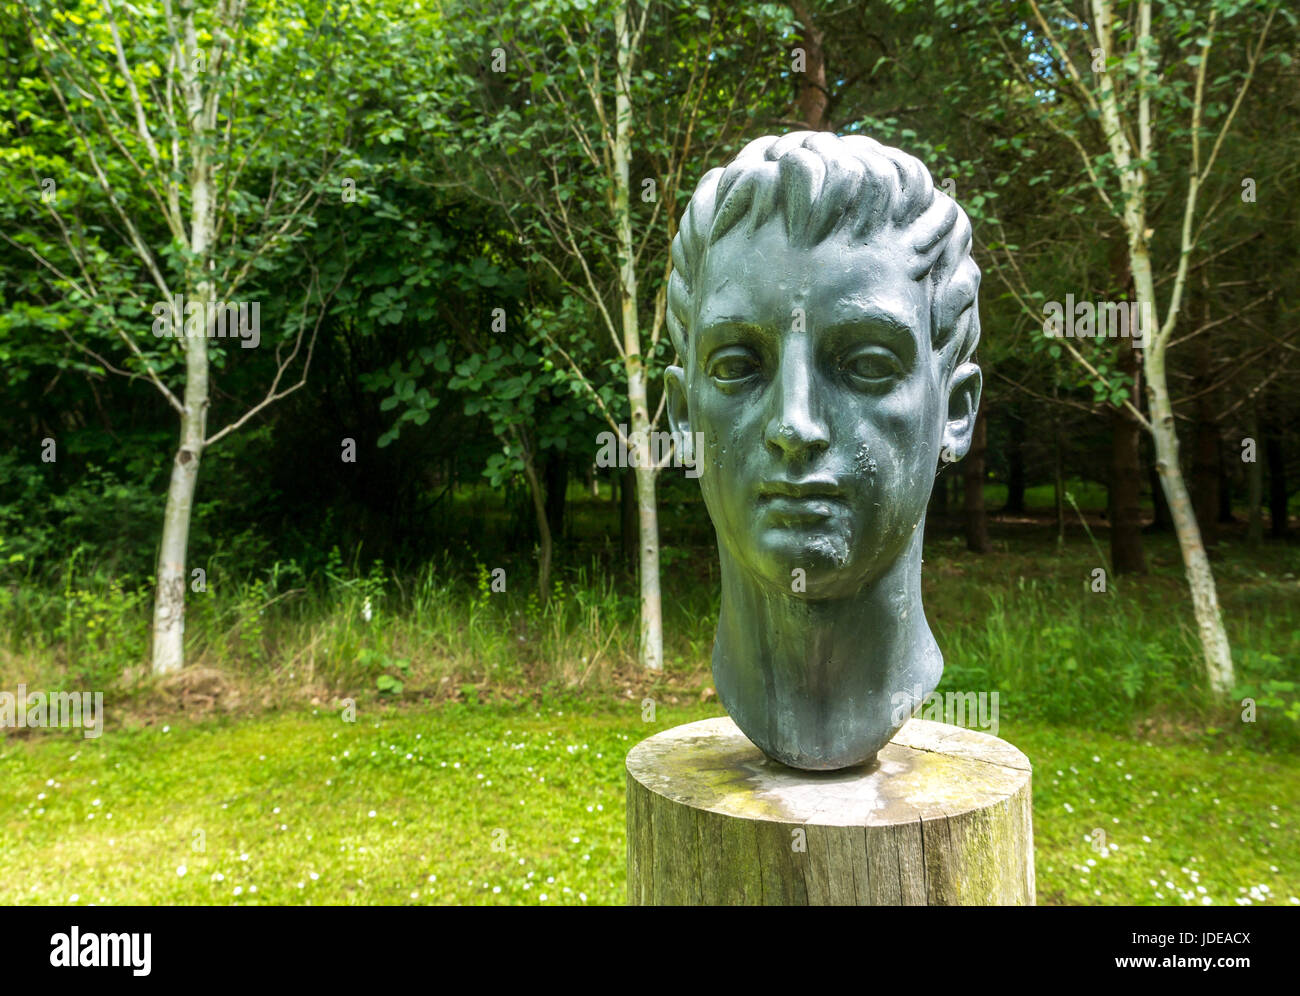 Sculpture of boy or young man head on wood stand in circle of birch trees, called Holloway at Broadwoodside, East - Stock Image